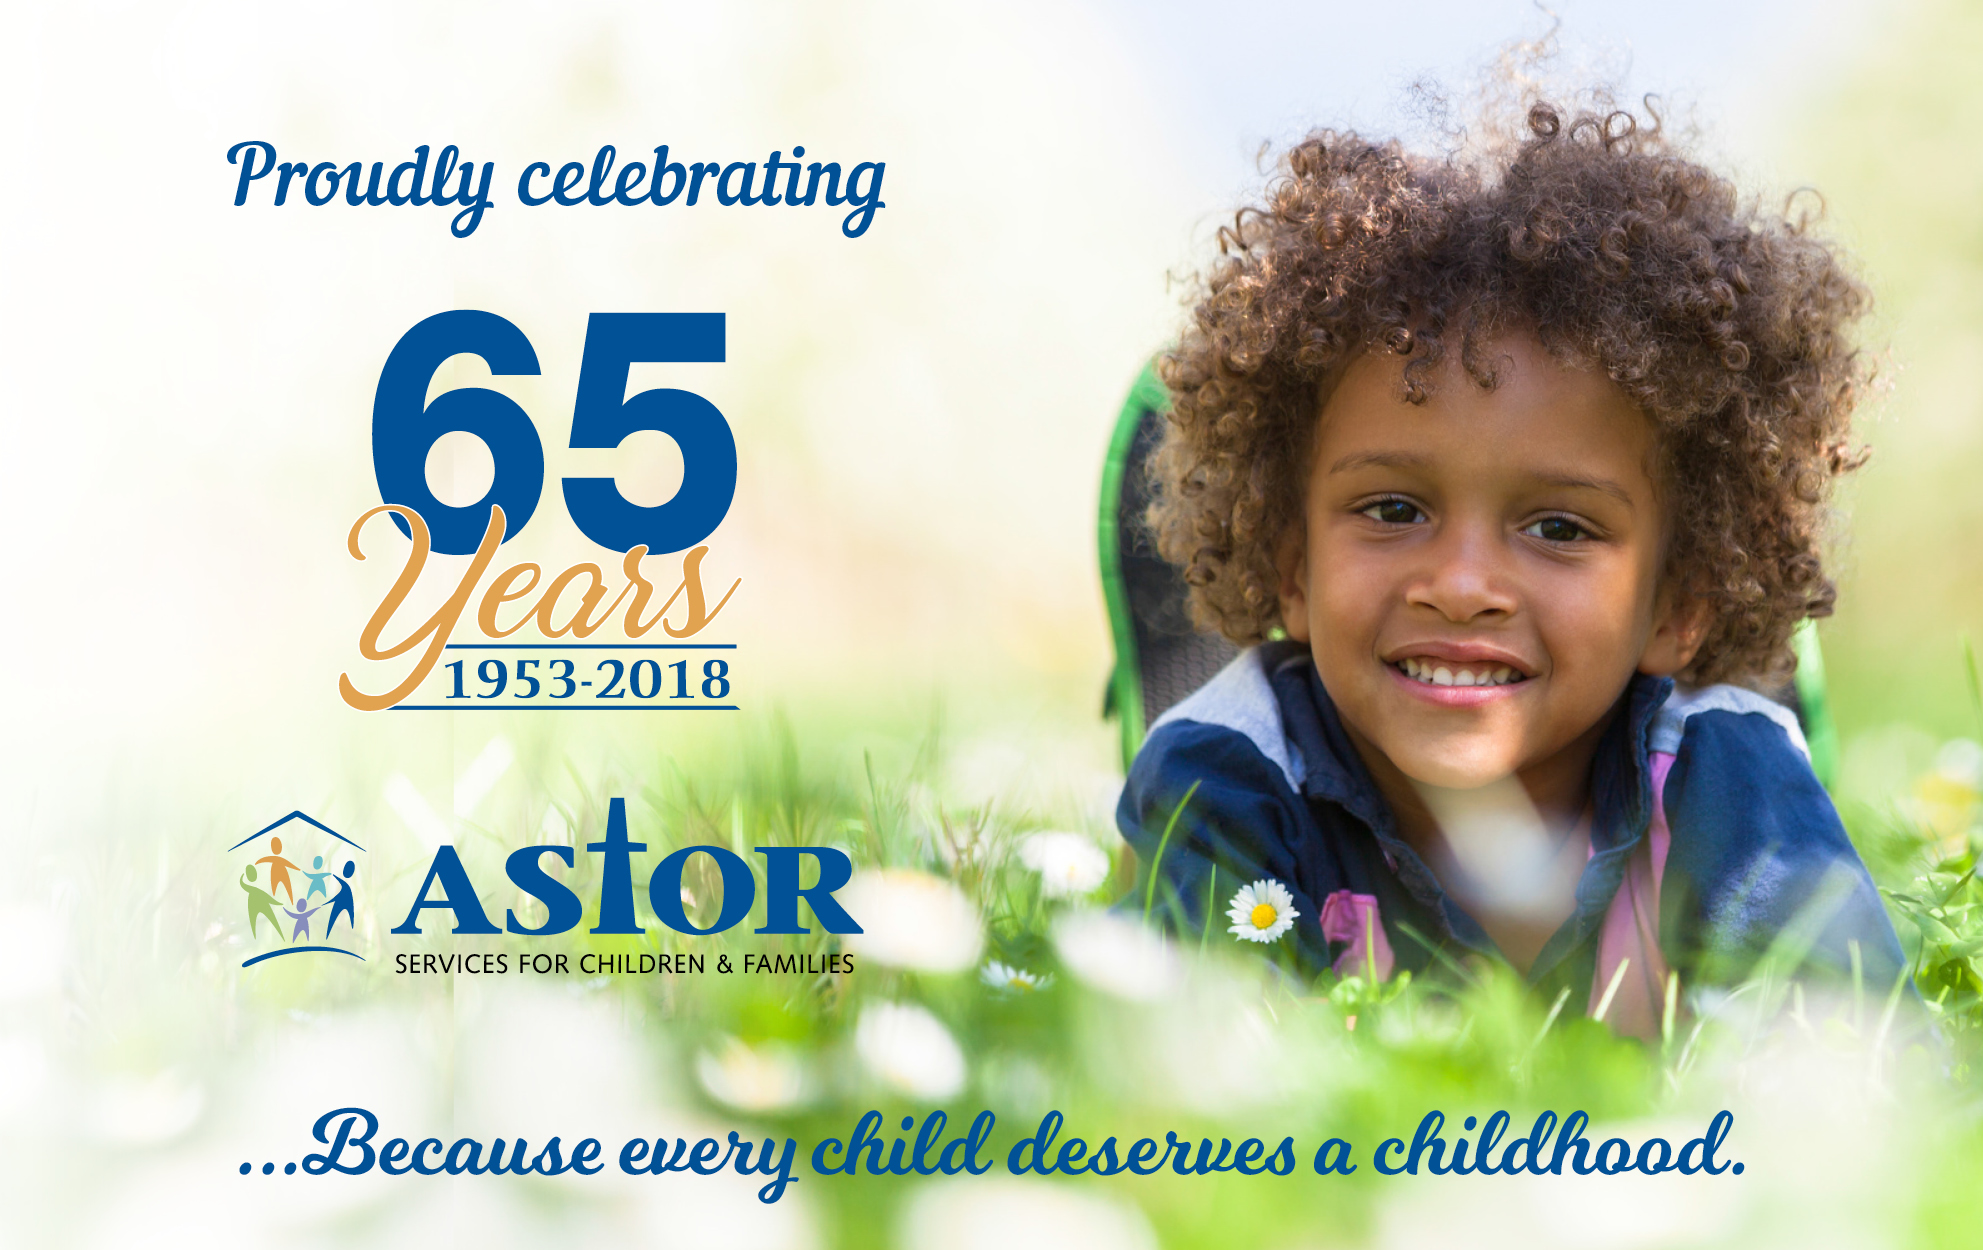 65th Anniversary Astor Services For Children Families Because